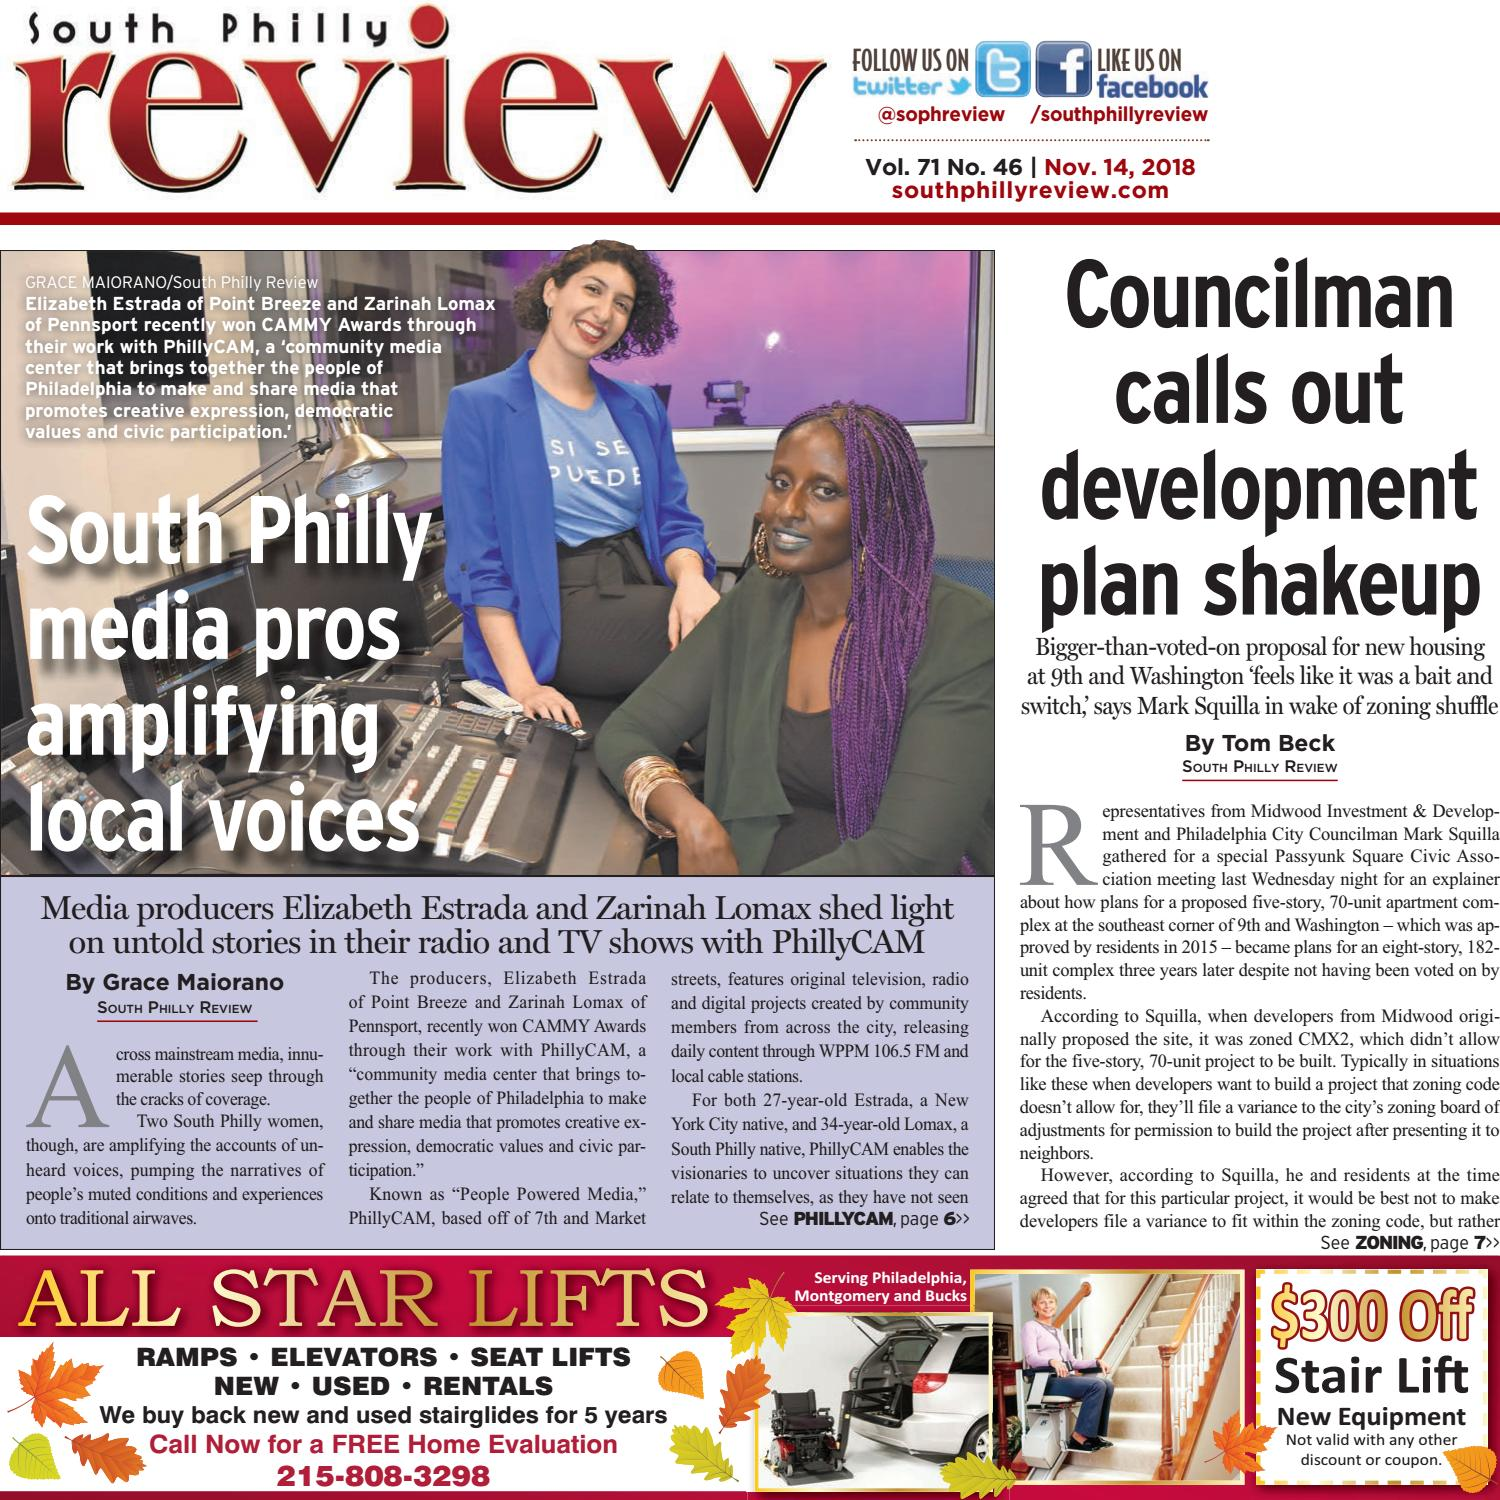 South Philly Review 11 14 18 by South Philly Review issuu